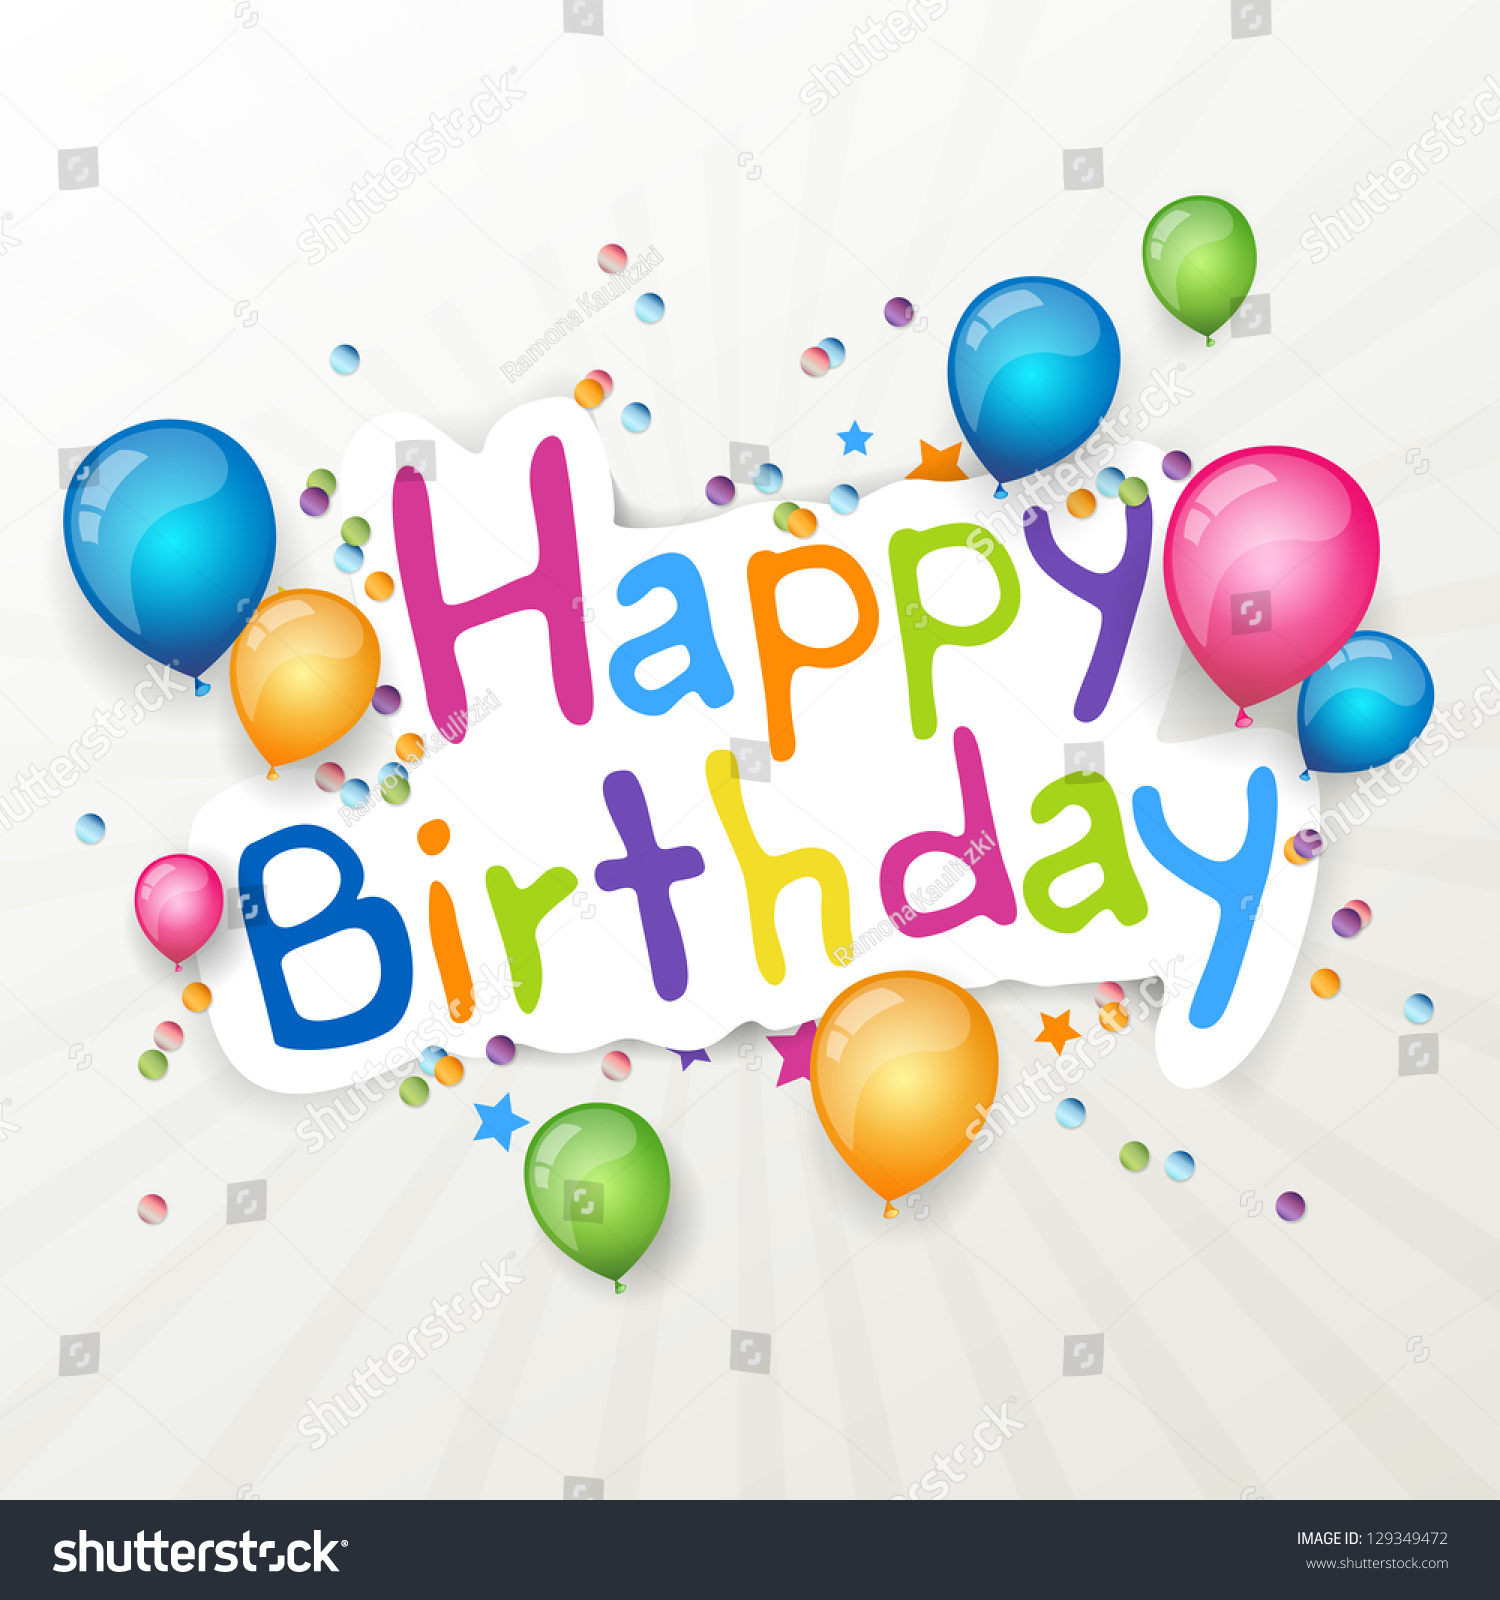 vector illustration happy birthday greeting card stock vector, Birthday card